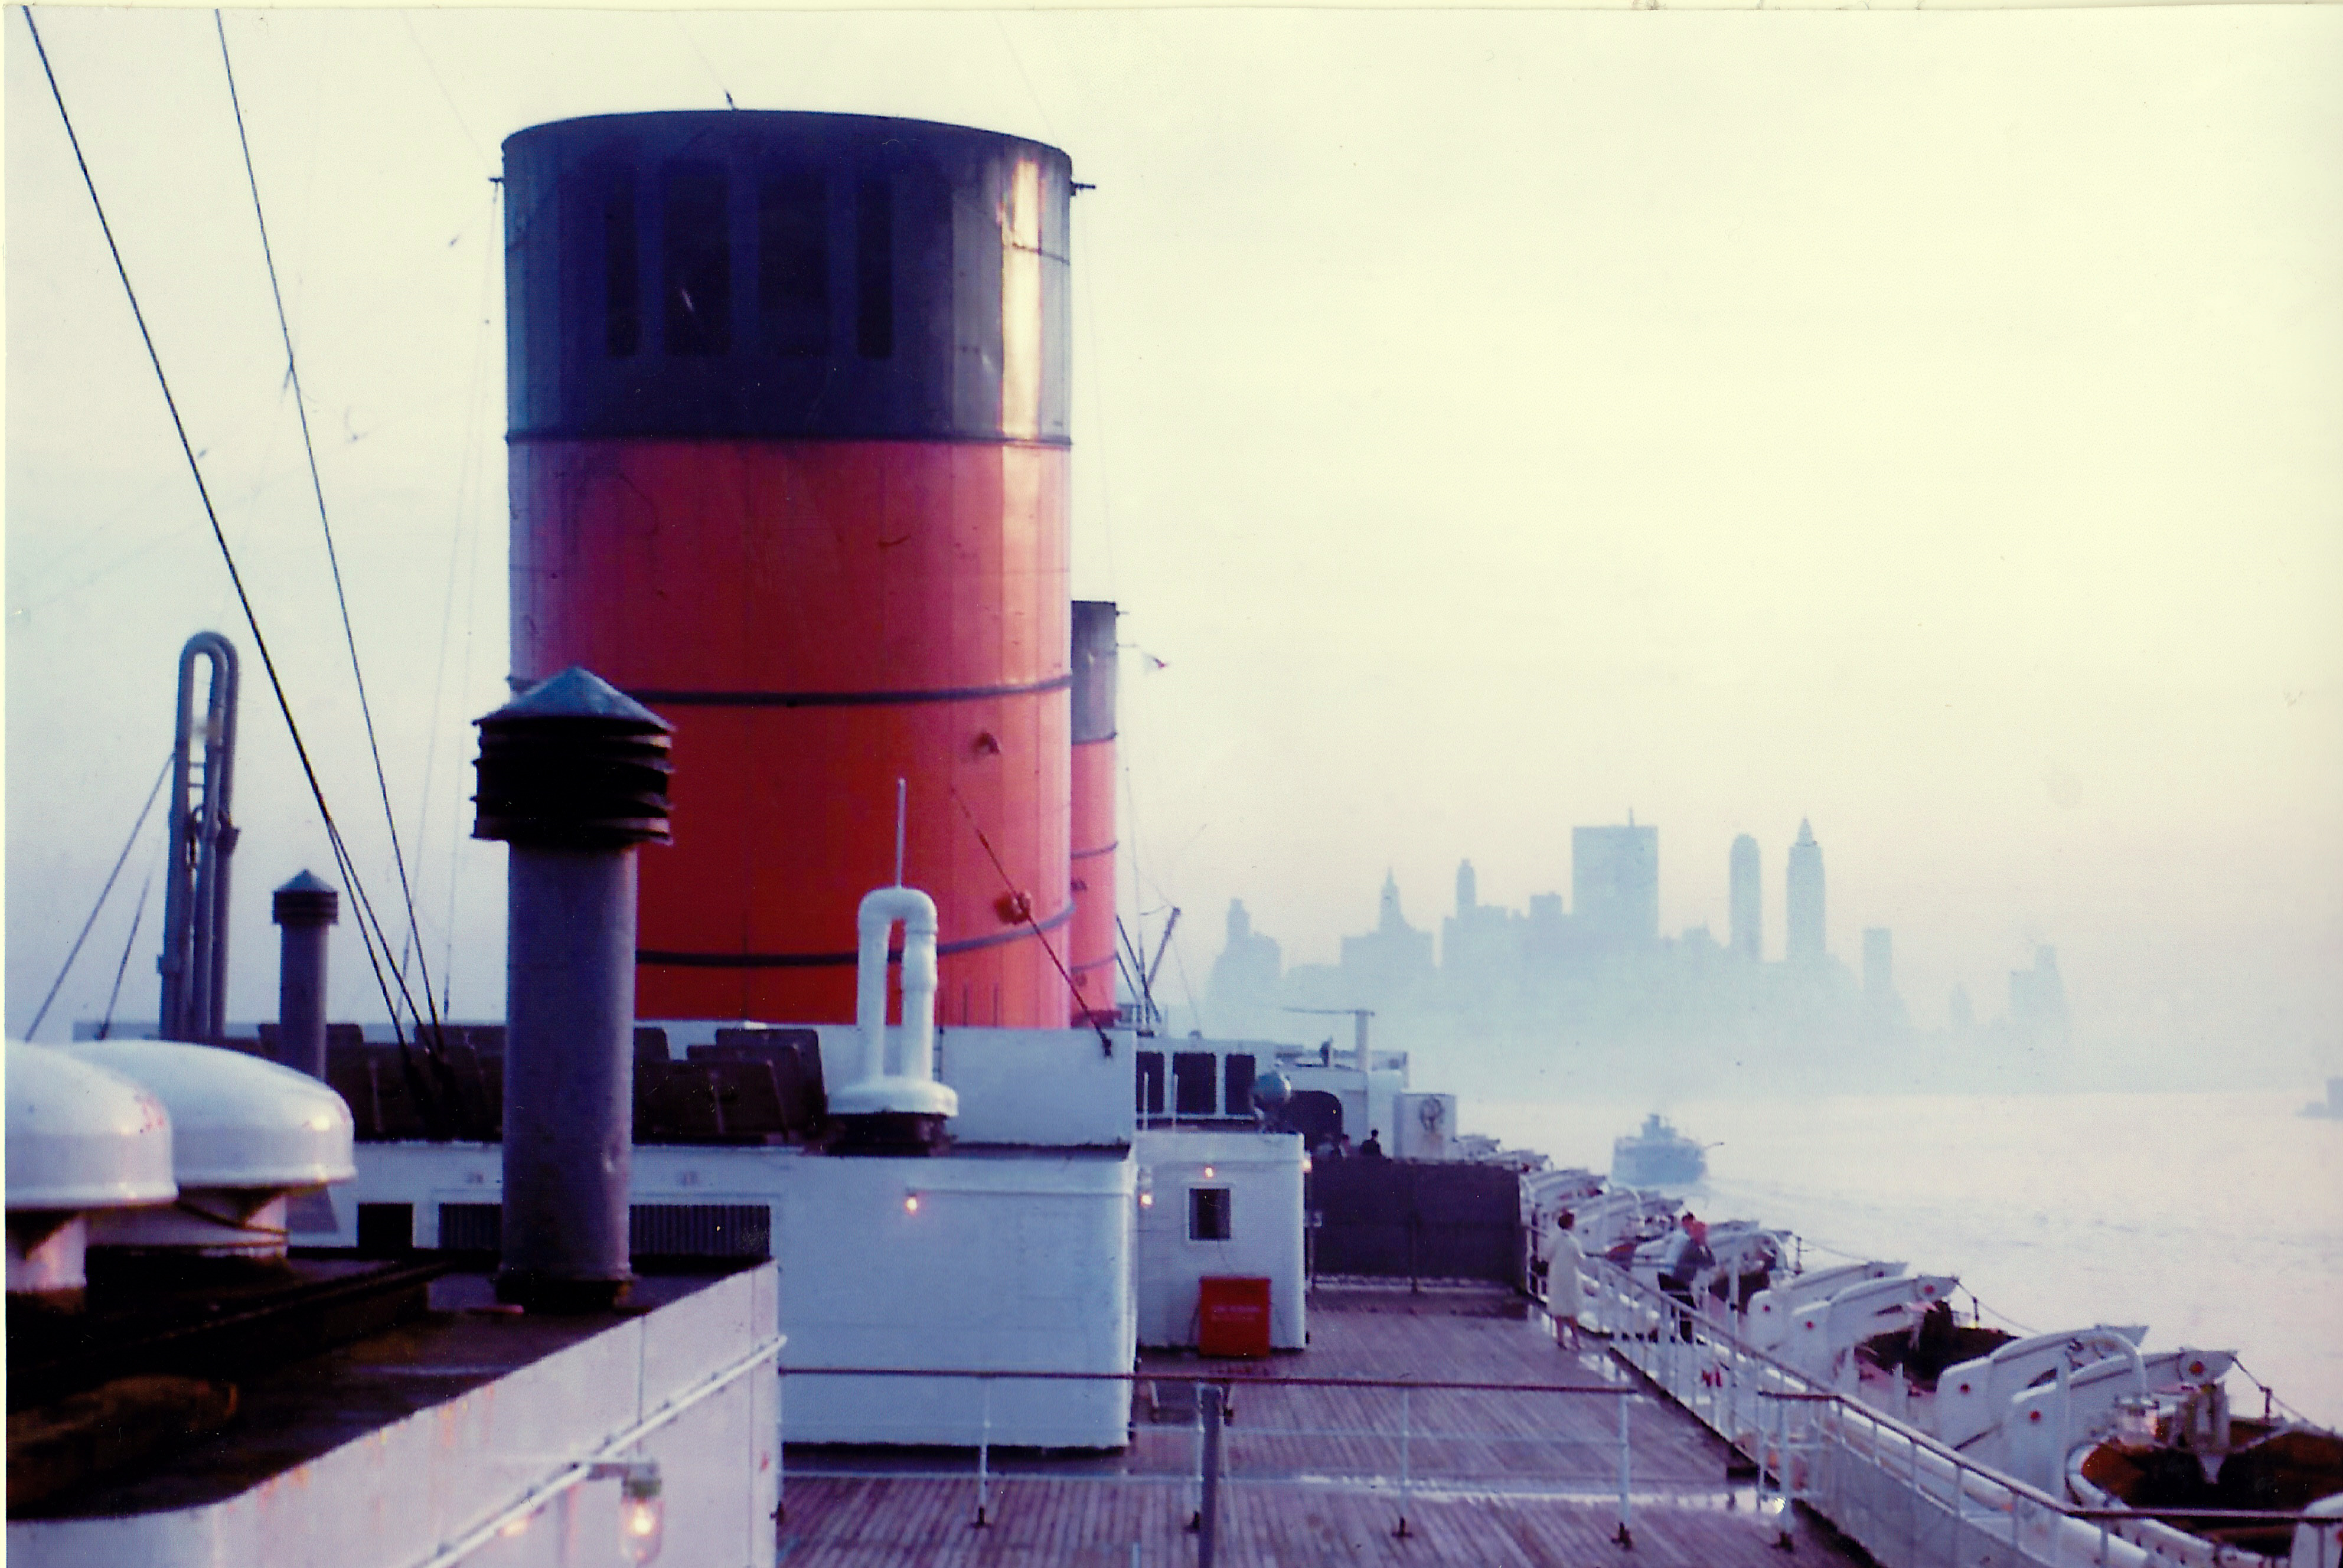 Queen Elizabeth entering New York harbor in 1965, taken from the boat deck, early morning